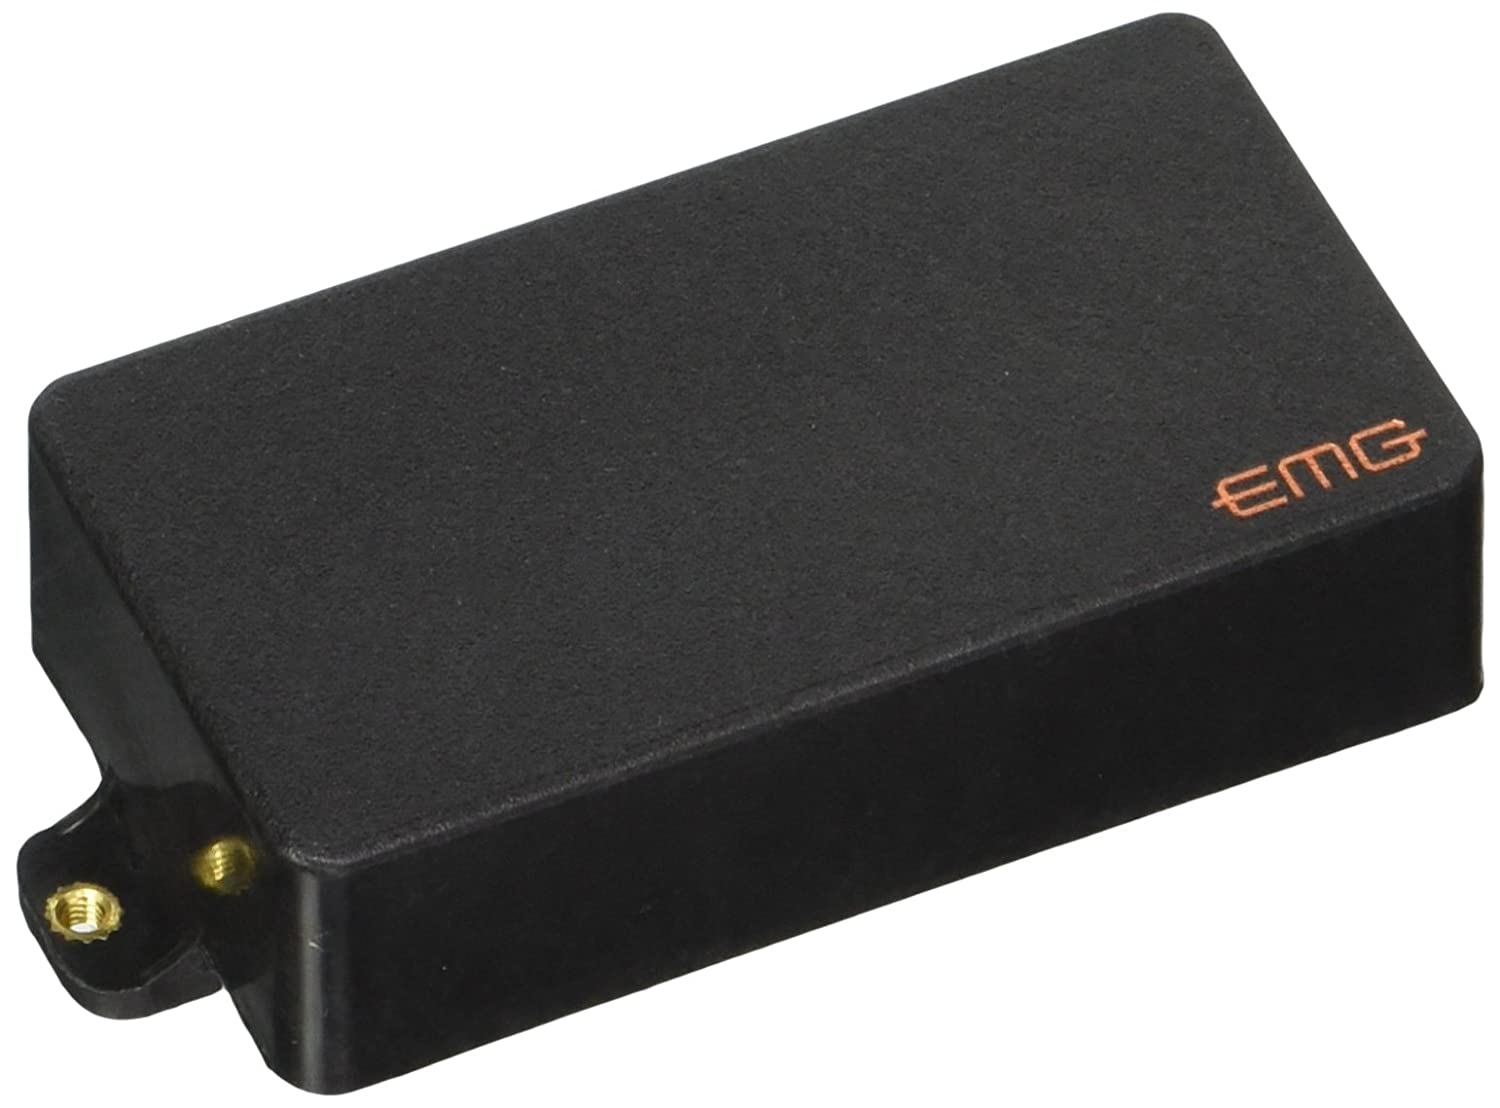 Emg 89 Dual Mode Guitar Humbucker Pickup Black Musical Solderless Wiring Diagram 1 Instruments